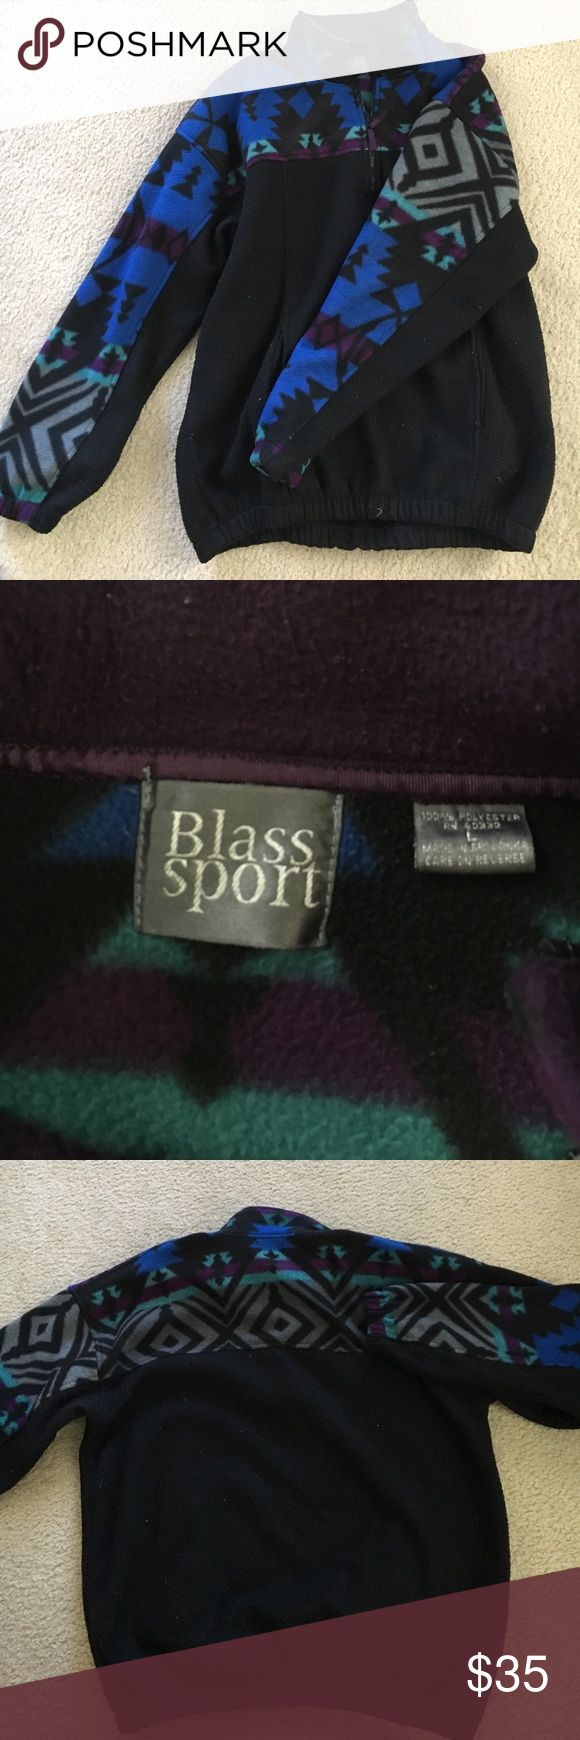 AZTEC PRINTED  SWEATER Colorful Aztec type printed quarter-zip sweater! Black base. Good condition! Green, purple, and blue colors are still very vibrant. Has 2 front pockets. Blass Sport Sweaters Zip Up